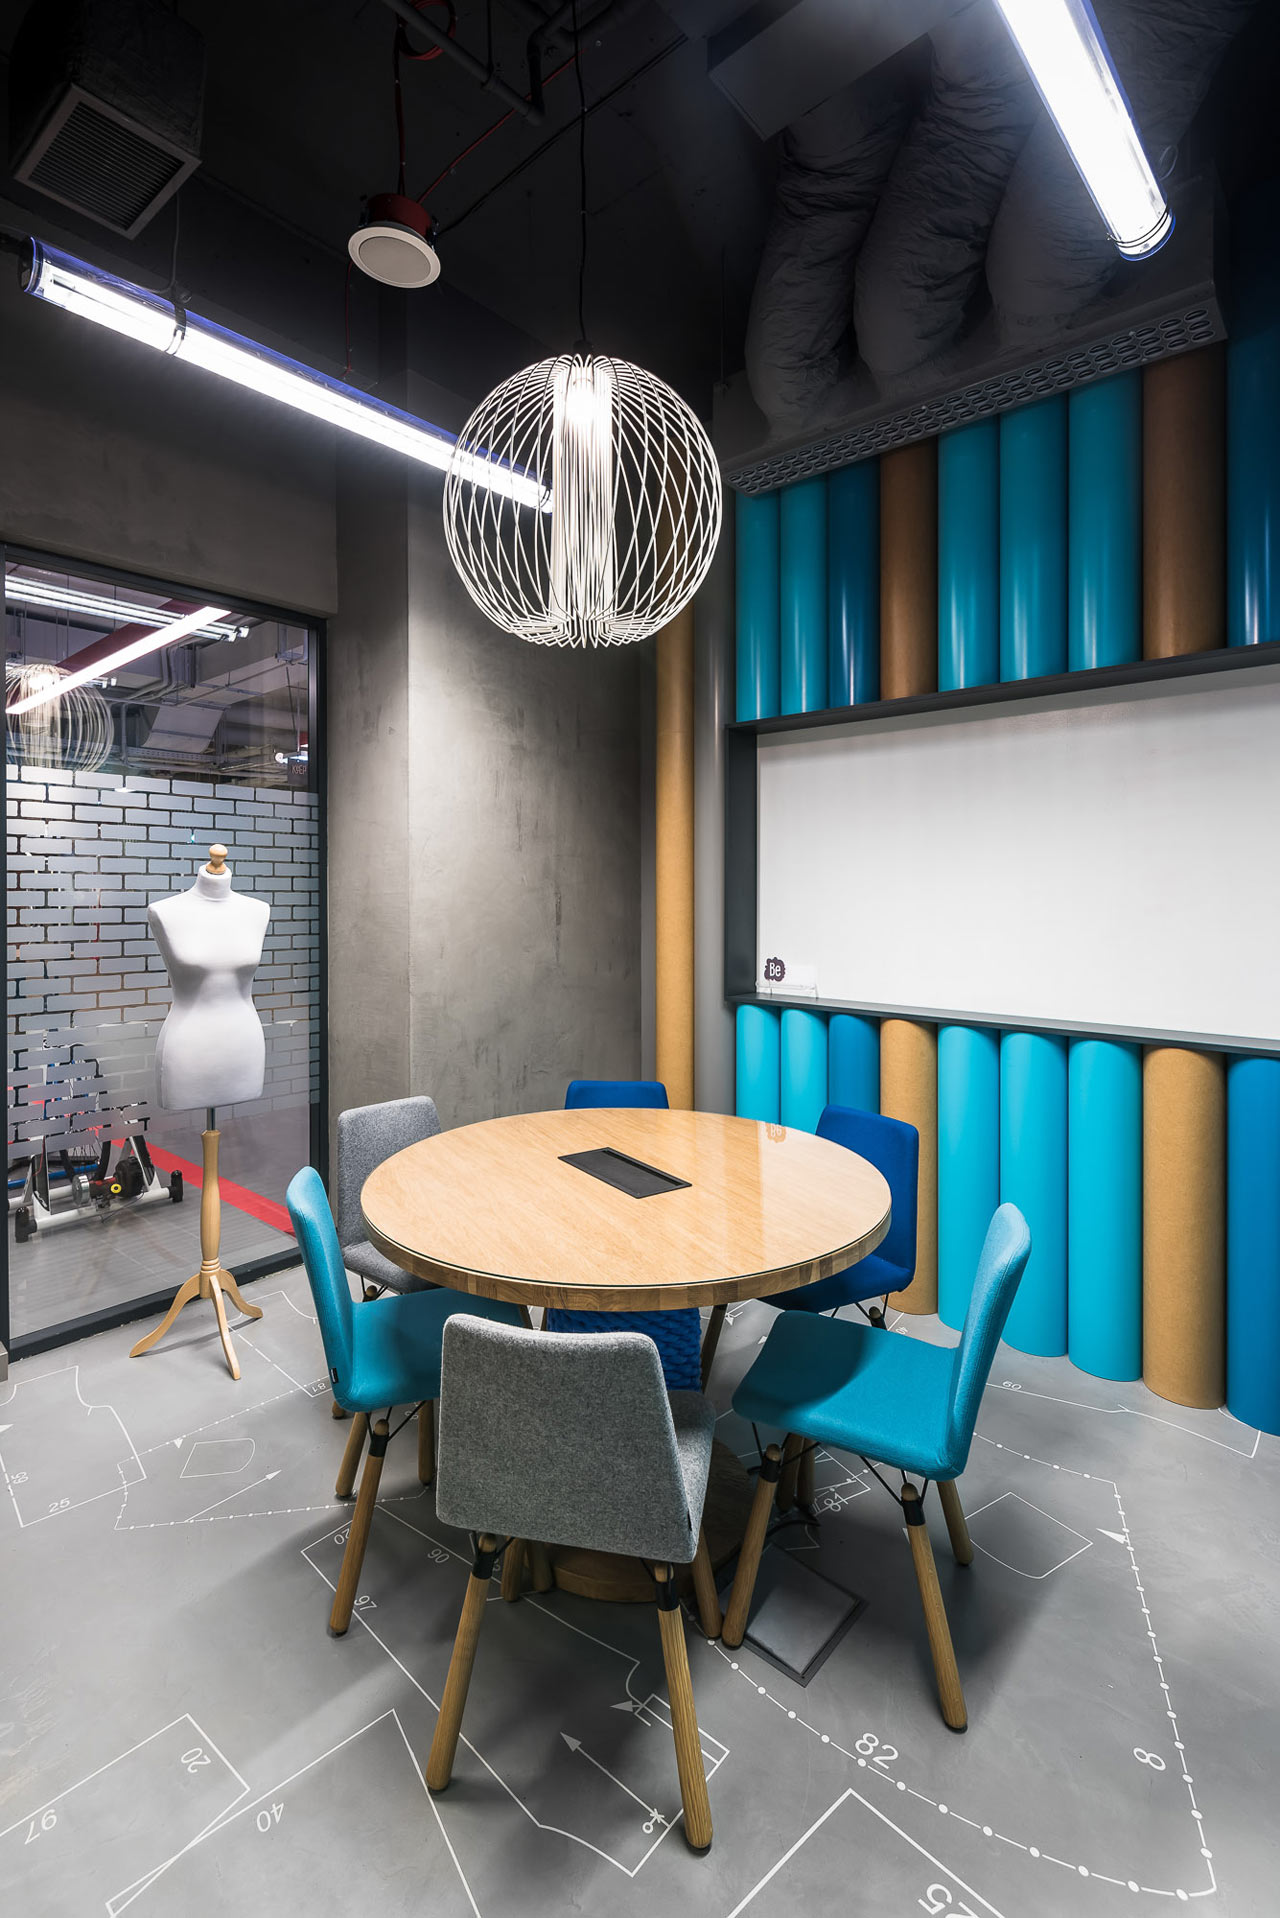 Creative Brain-Themed Co-Working Space in Warsaw